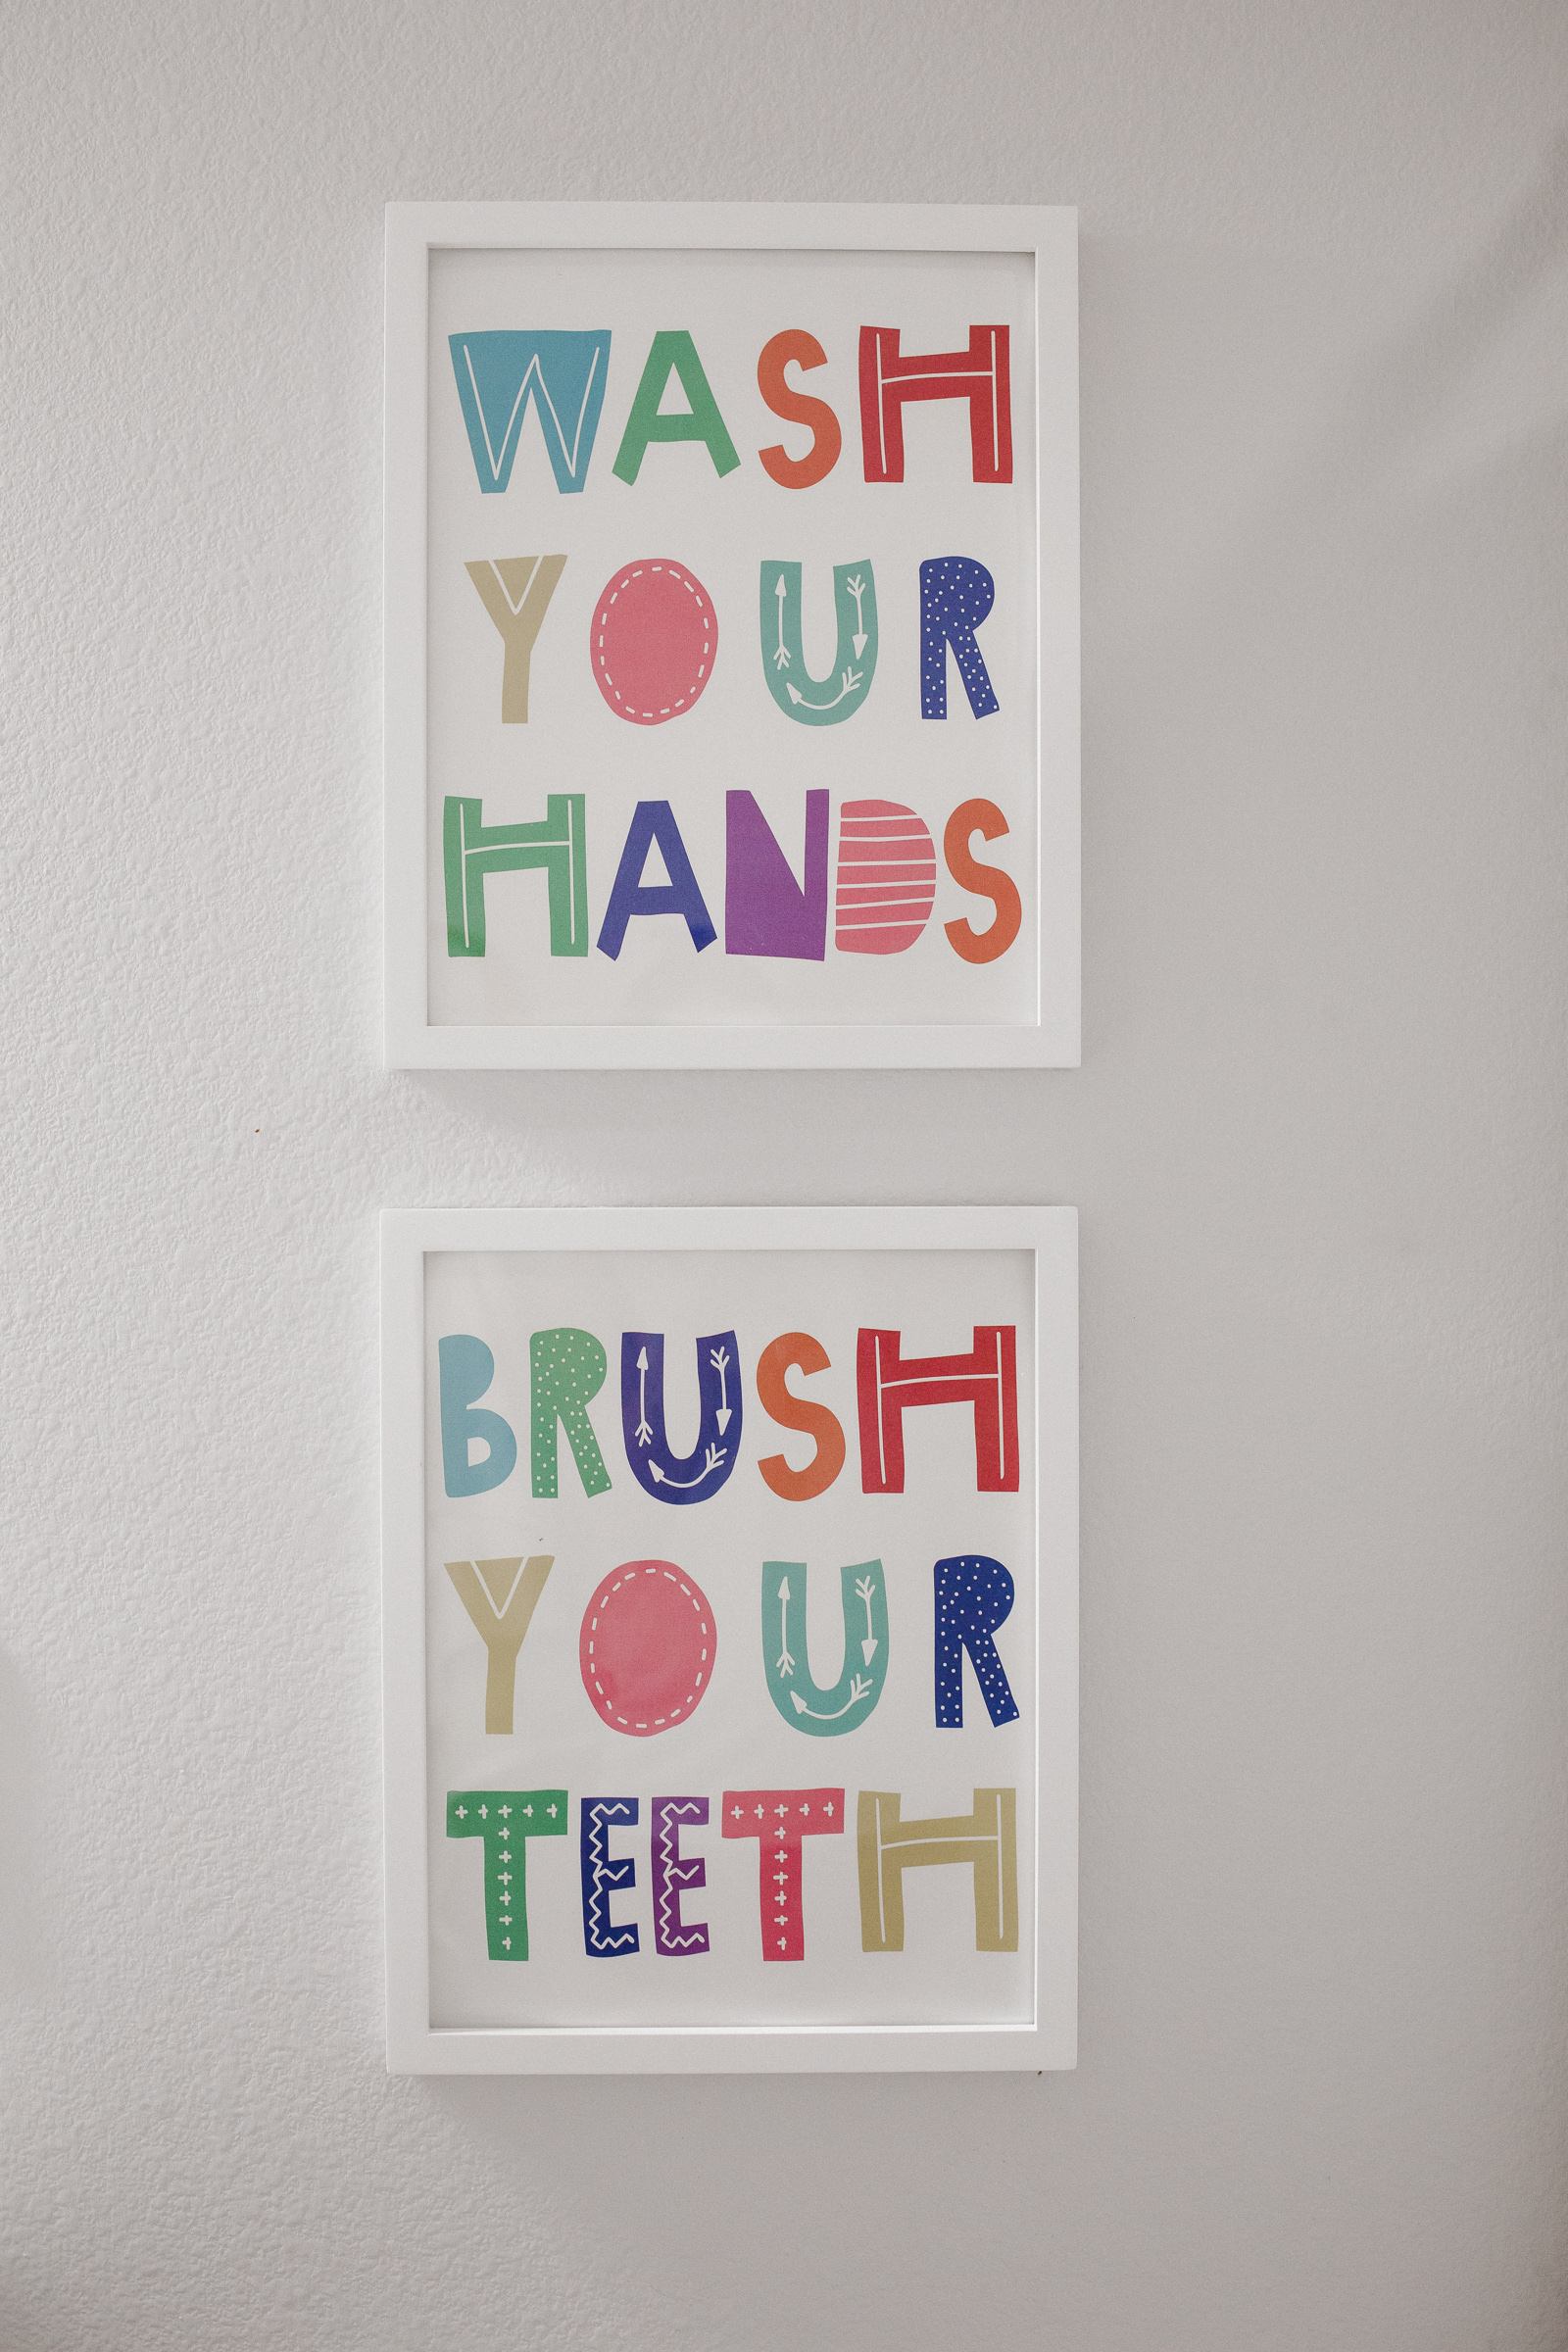 Elly Brown shares her Wash your hands, brush your teeth bathroom canvas prints for her shared bathroom decor